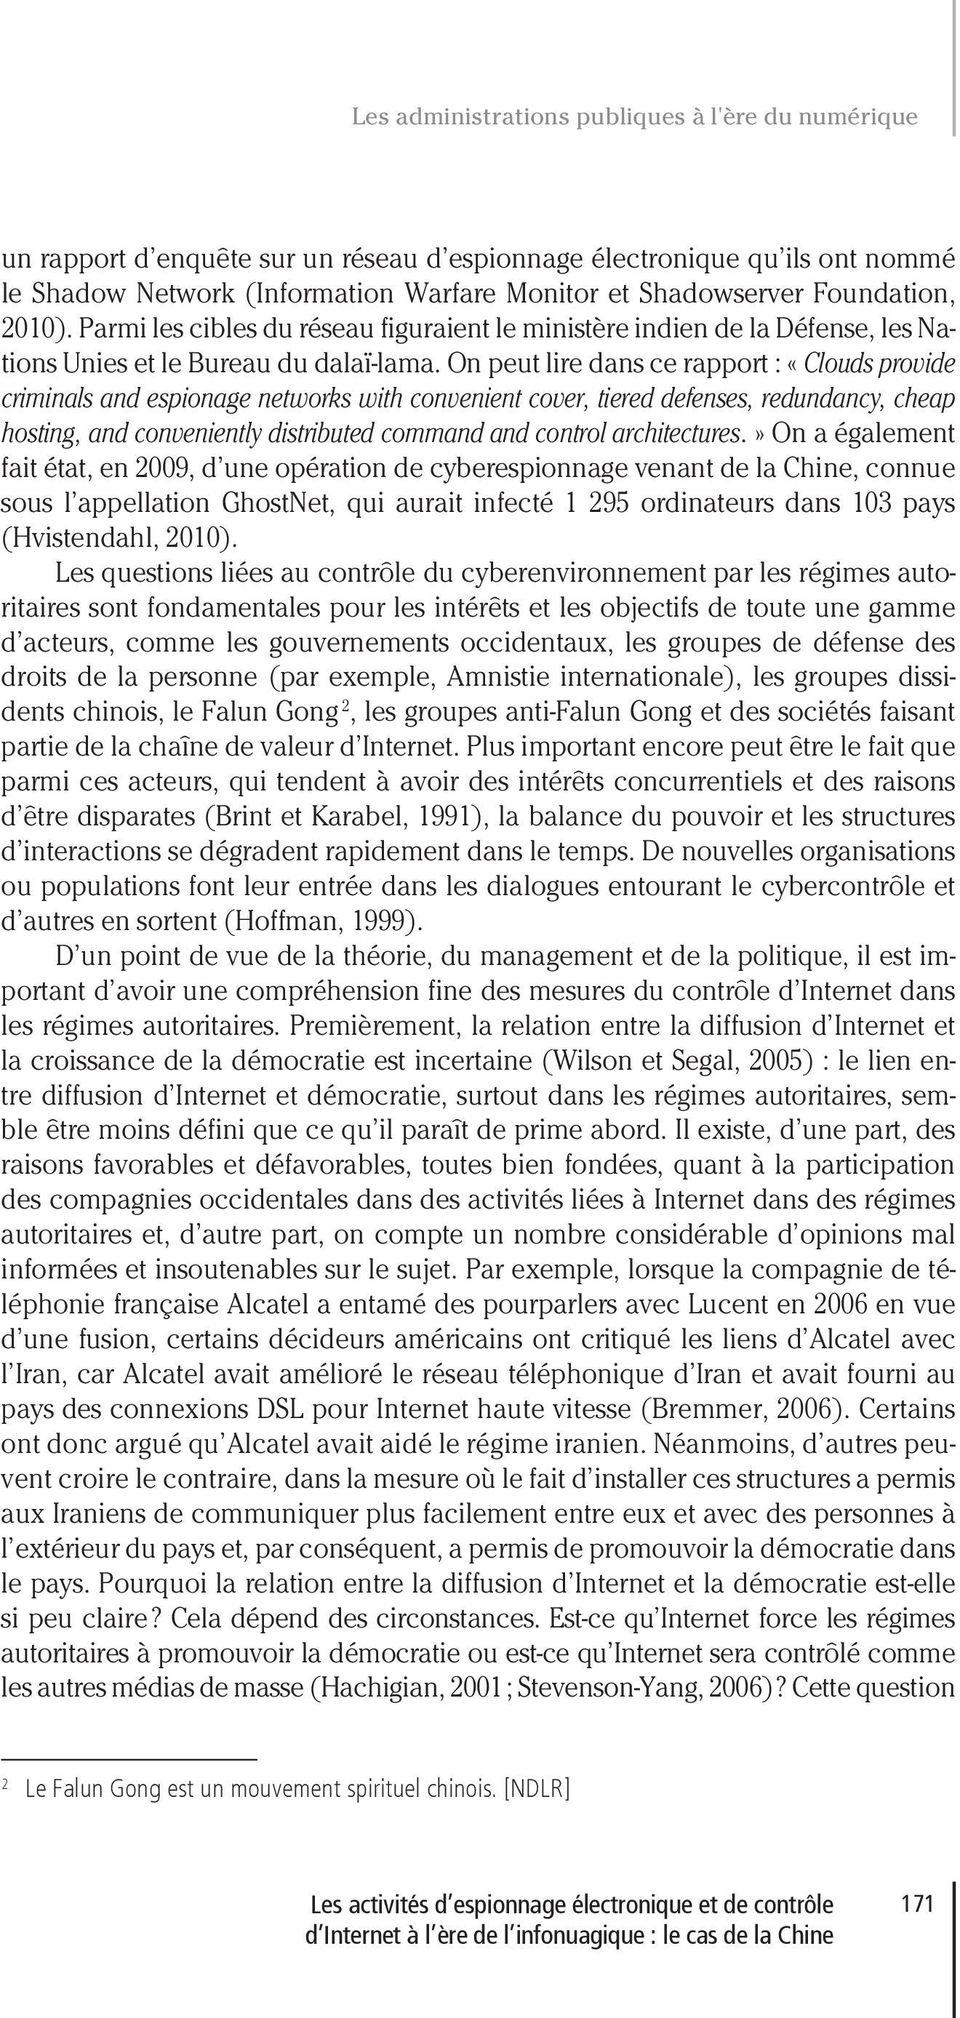 On peut lire dans ce rapport : «Clouds provide criminals and espionage networks with convenient cover, tiered defenses, redundancy, cheap hosting, and conveniently distributed command and control